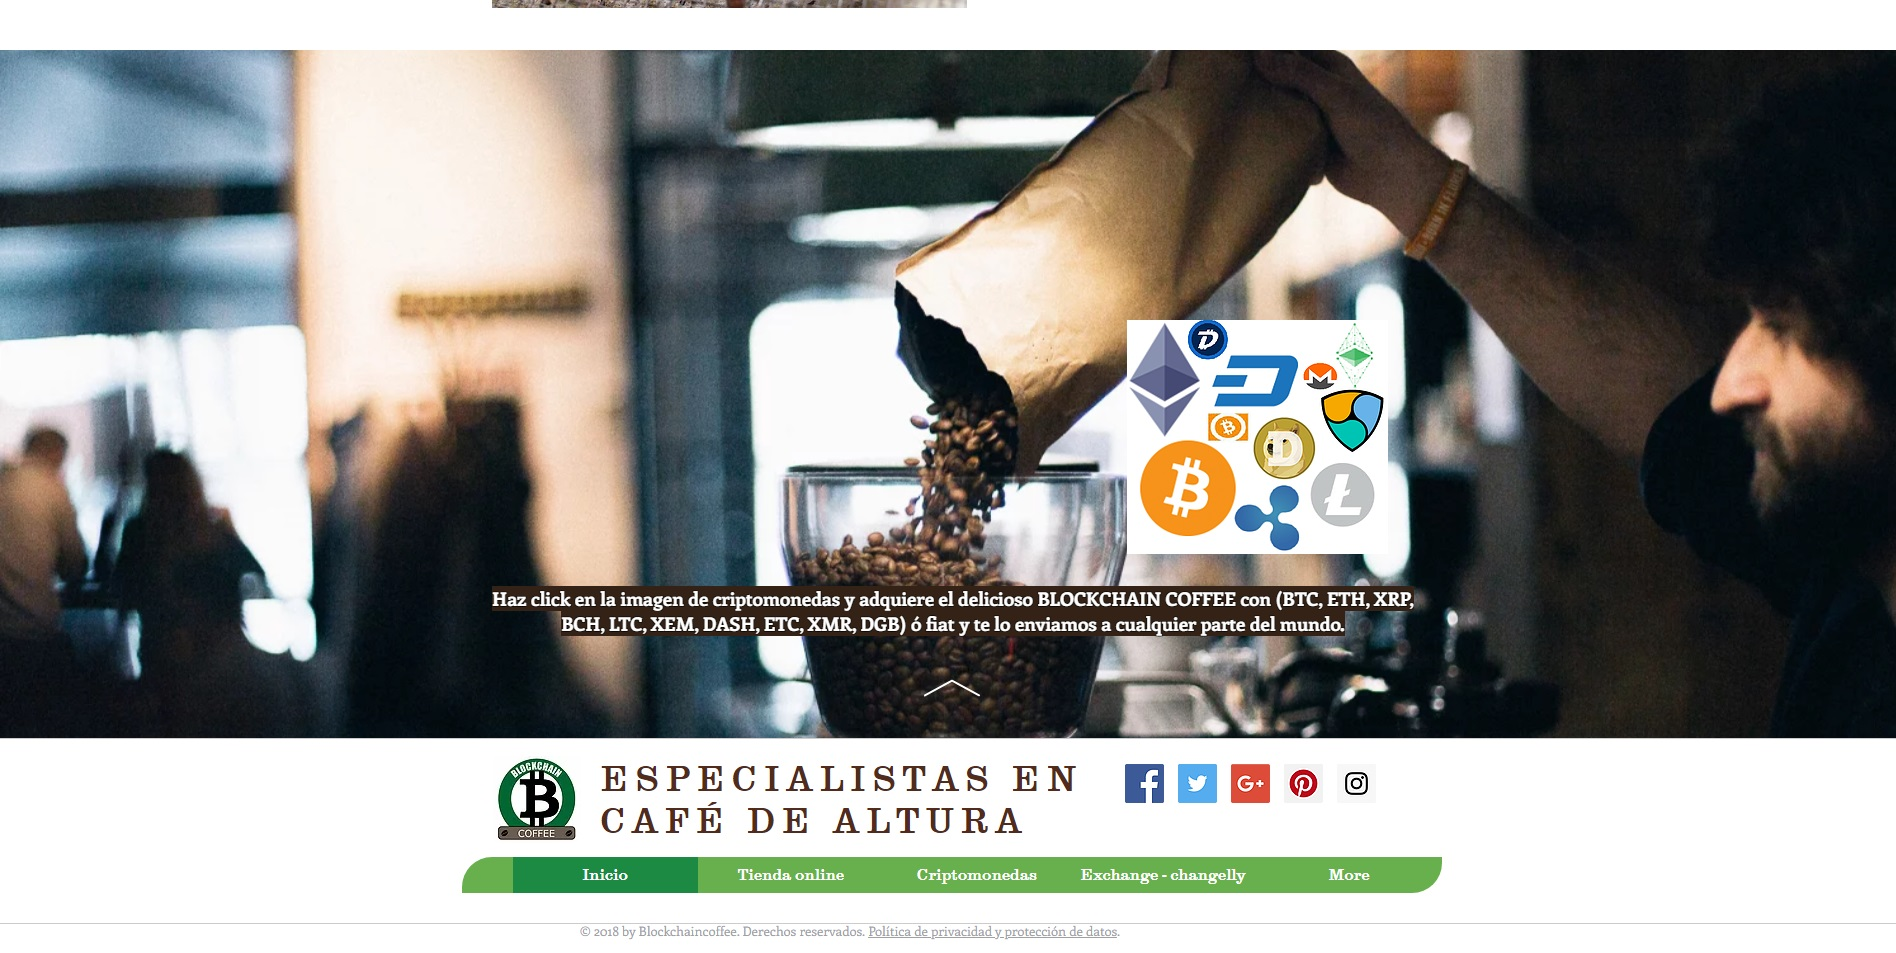 blockchain-coffee_1555321165.jpg